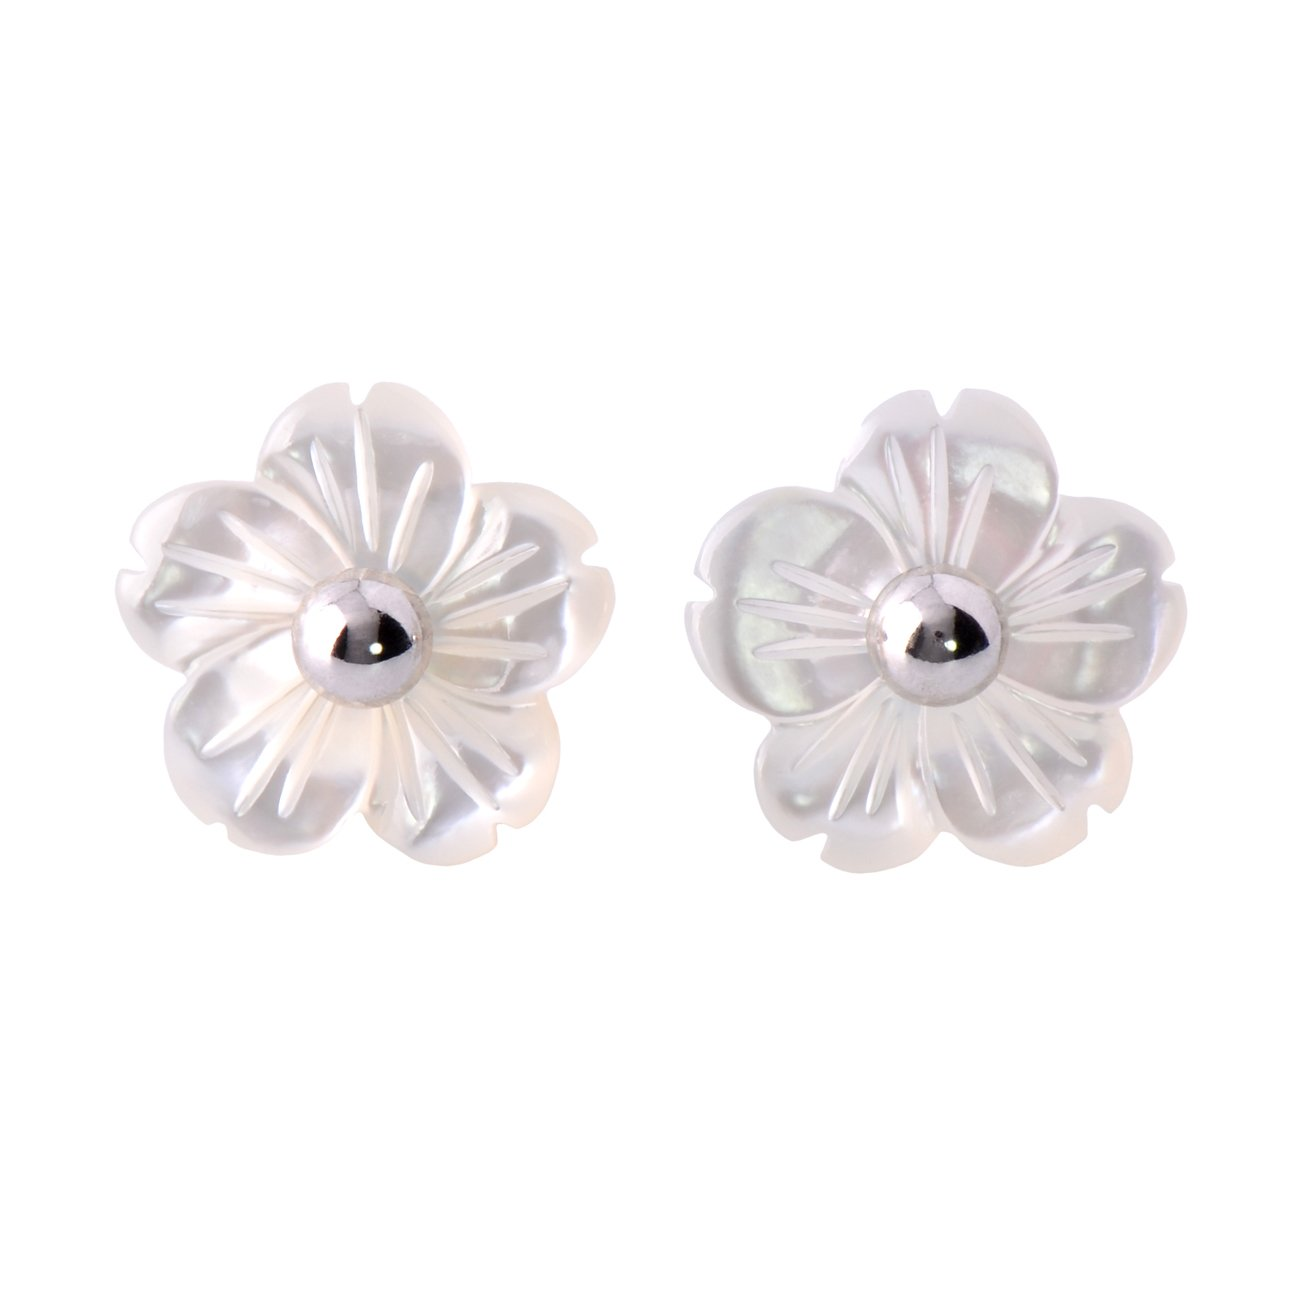 Paialco Mother of Pearl Flower Shape Earring Jackets Ball Silver Tone 4MM